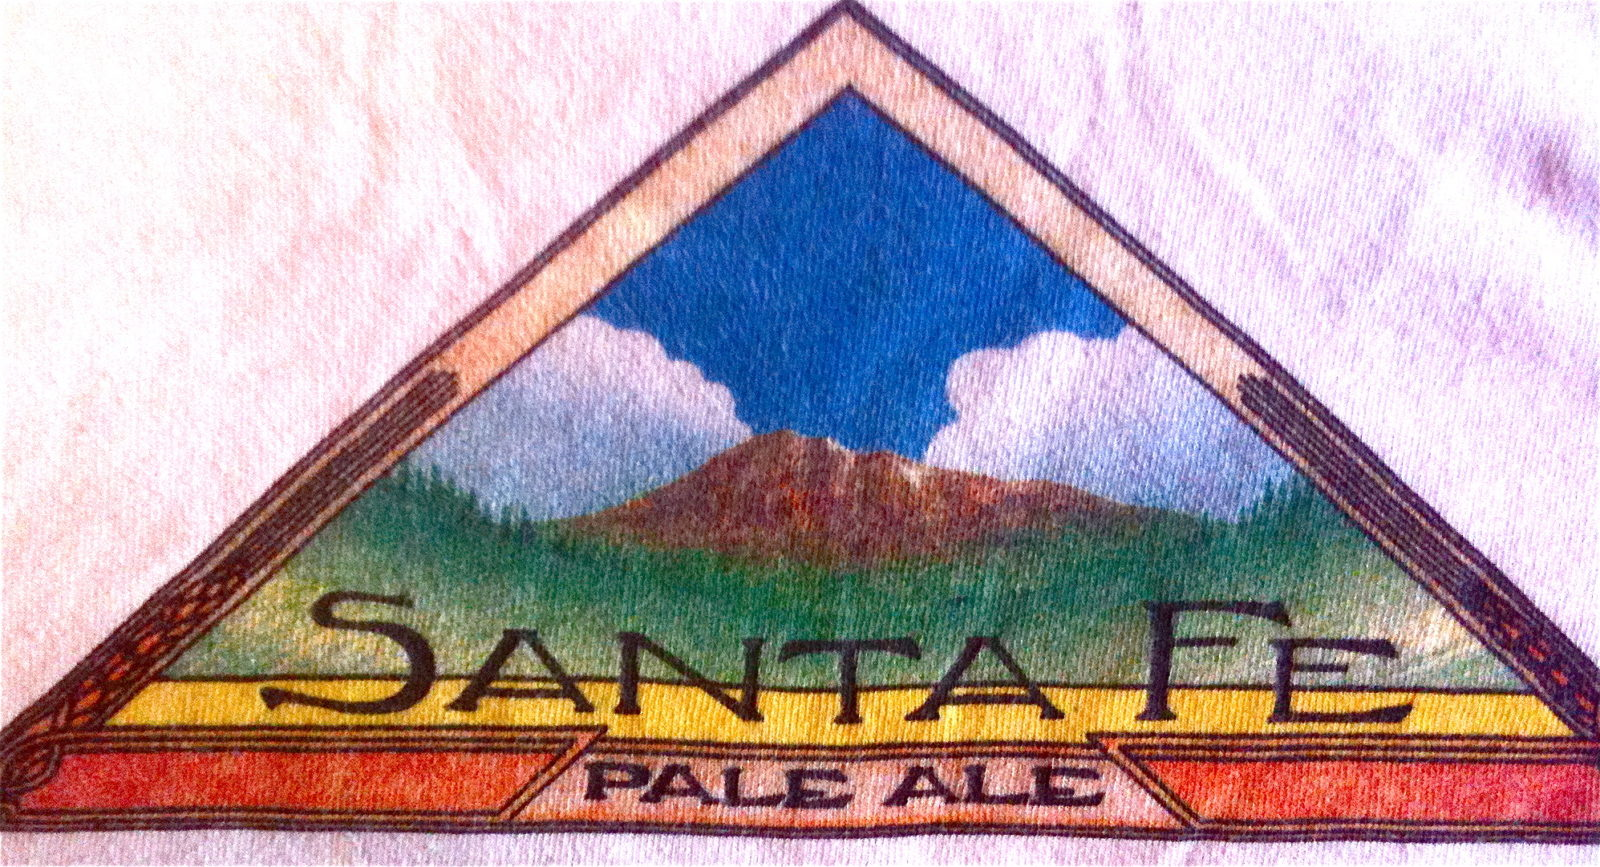 1. Santa Fe Brewing, Santa Fe NM 1989